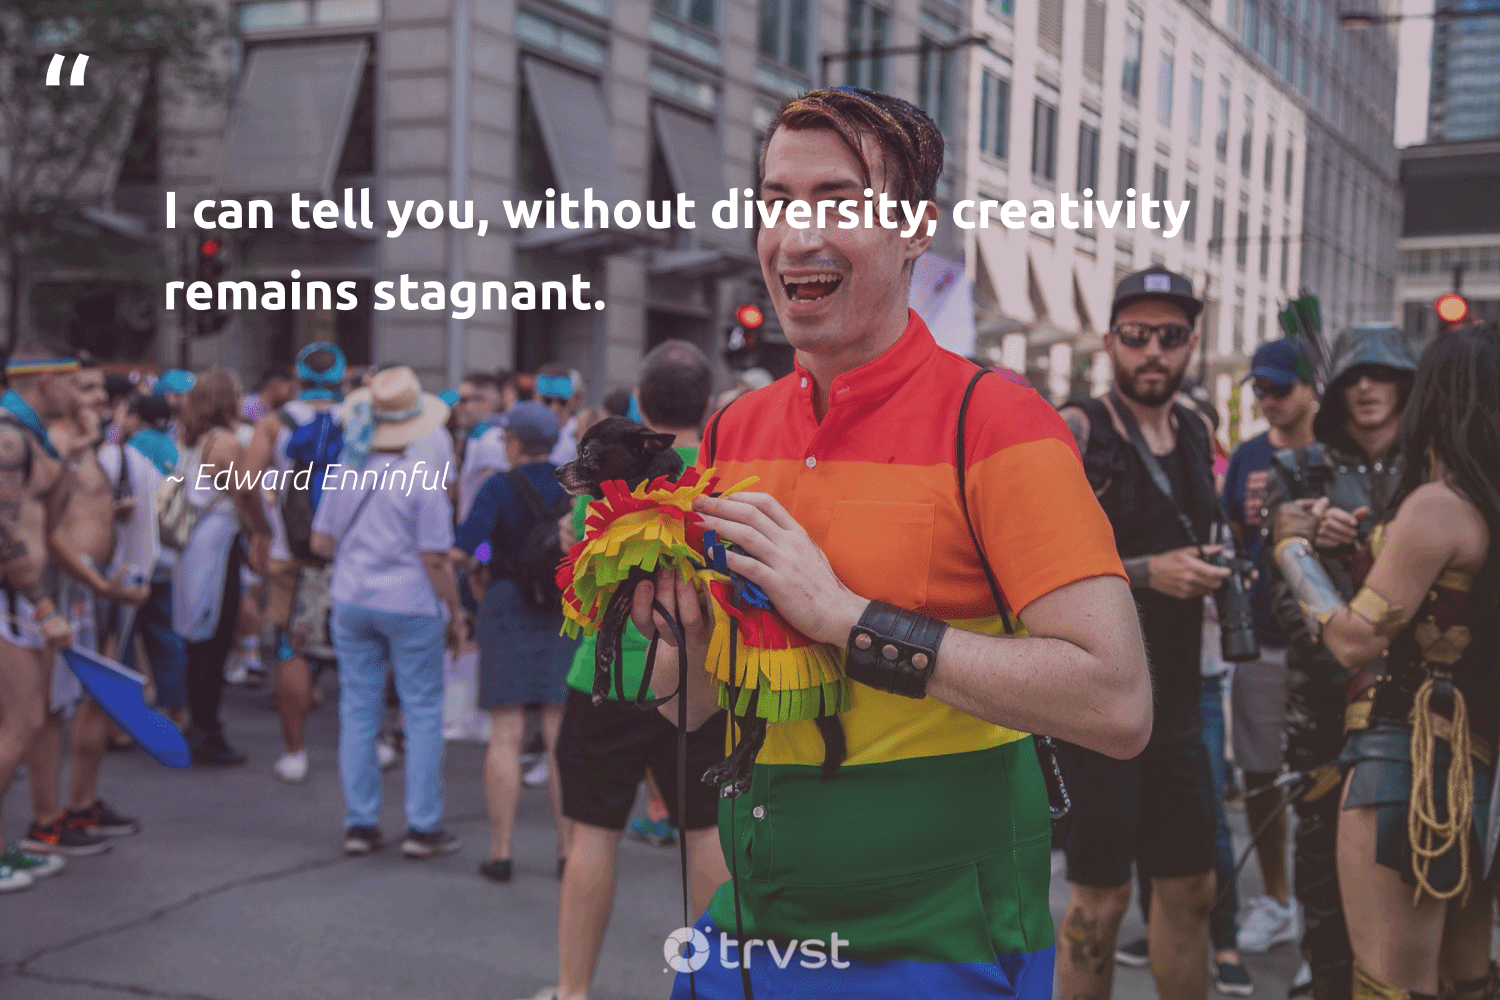 """""""I can tell you, without diversity, creativity remains stagnant.""""  - Edward Enninful #trvst #quotes #diversity #creativity #discrimination #representationmatters #socialchange #bethechange #thinkgreen #inclusion #weareallone #socialgood"""